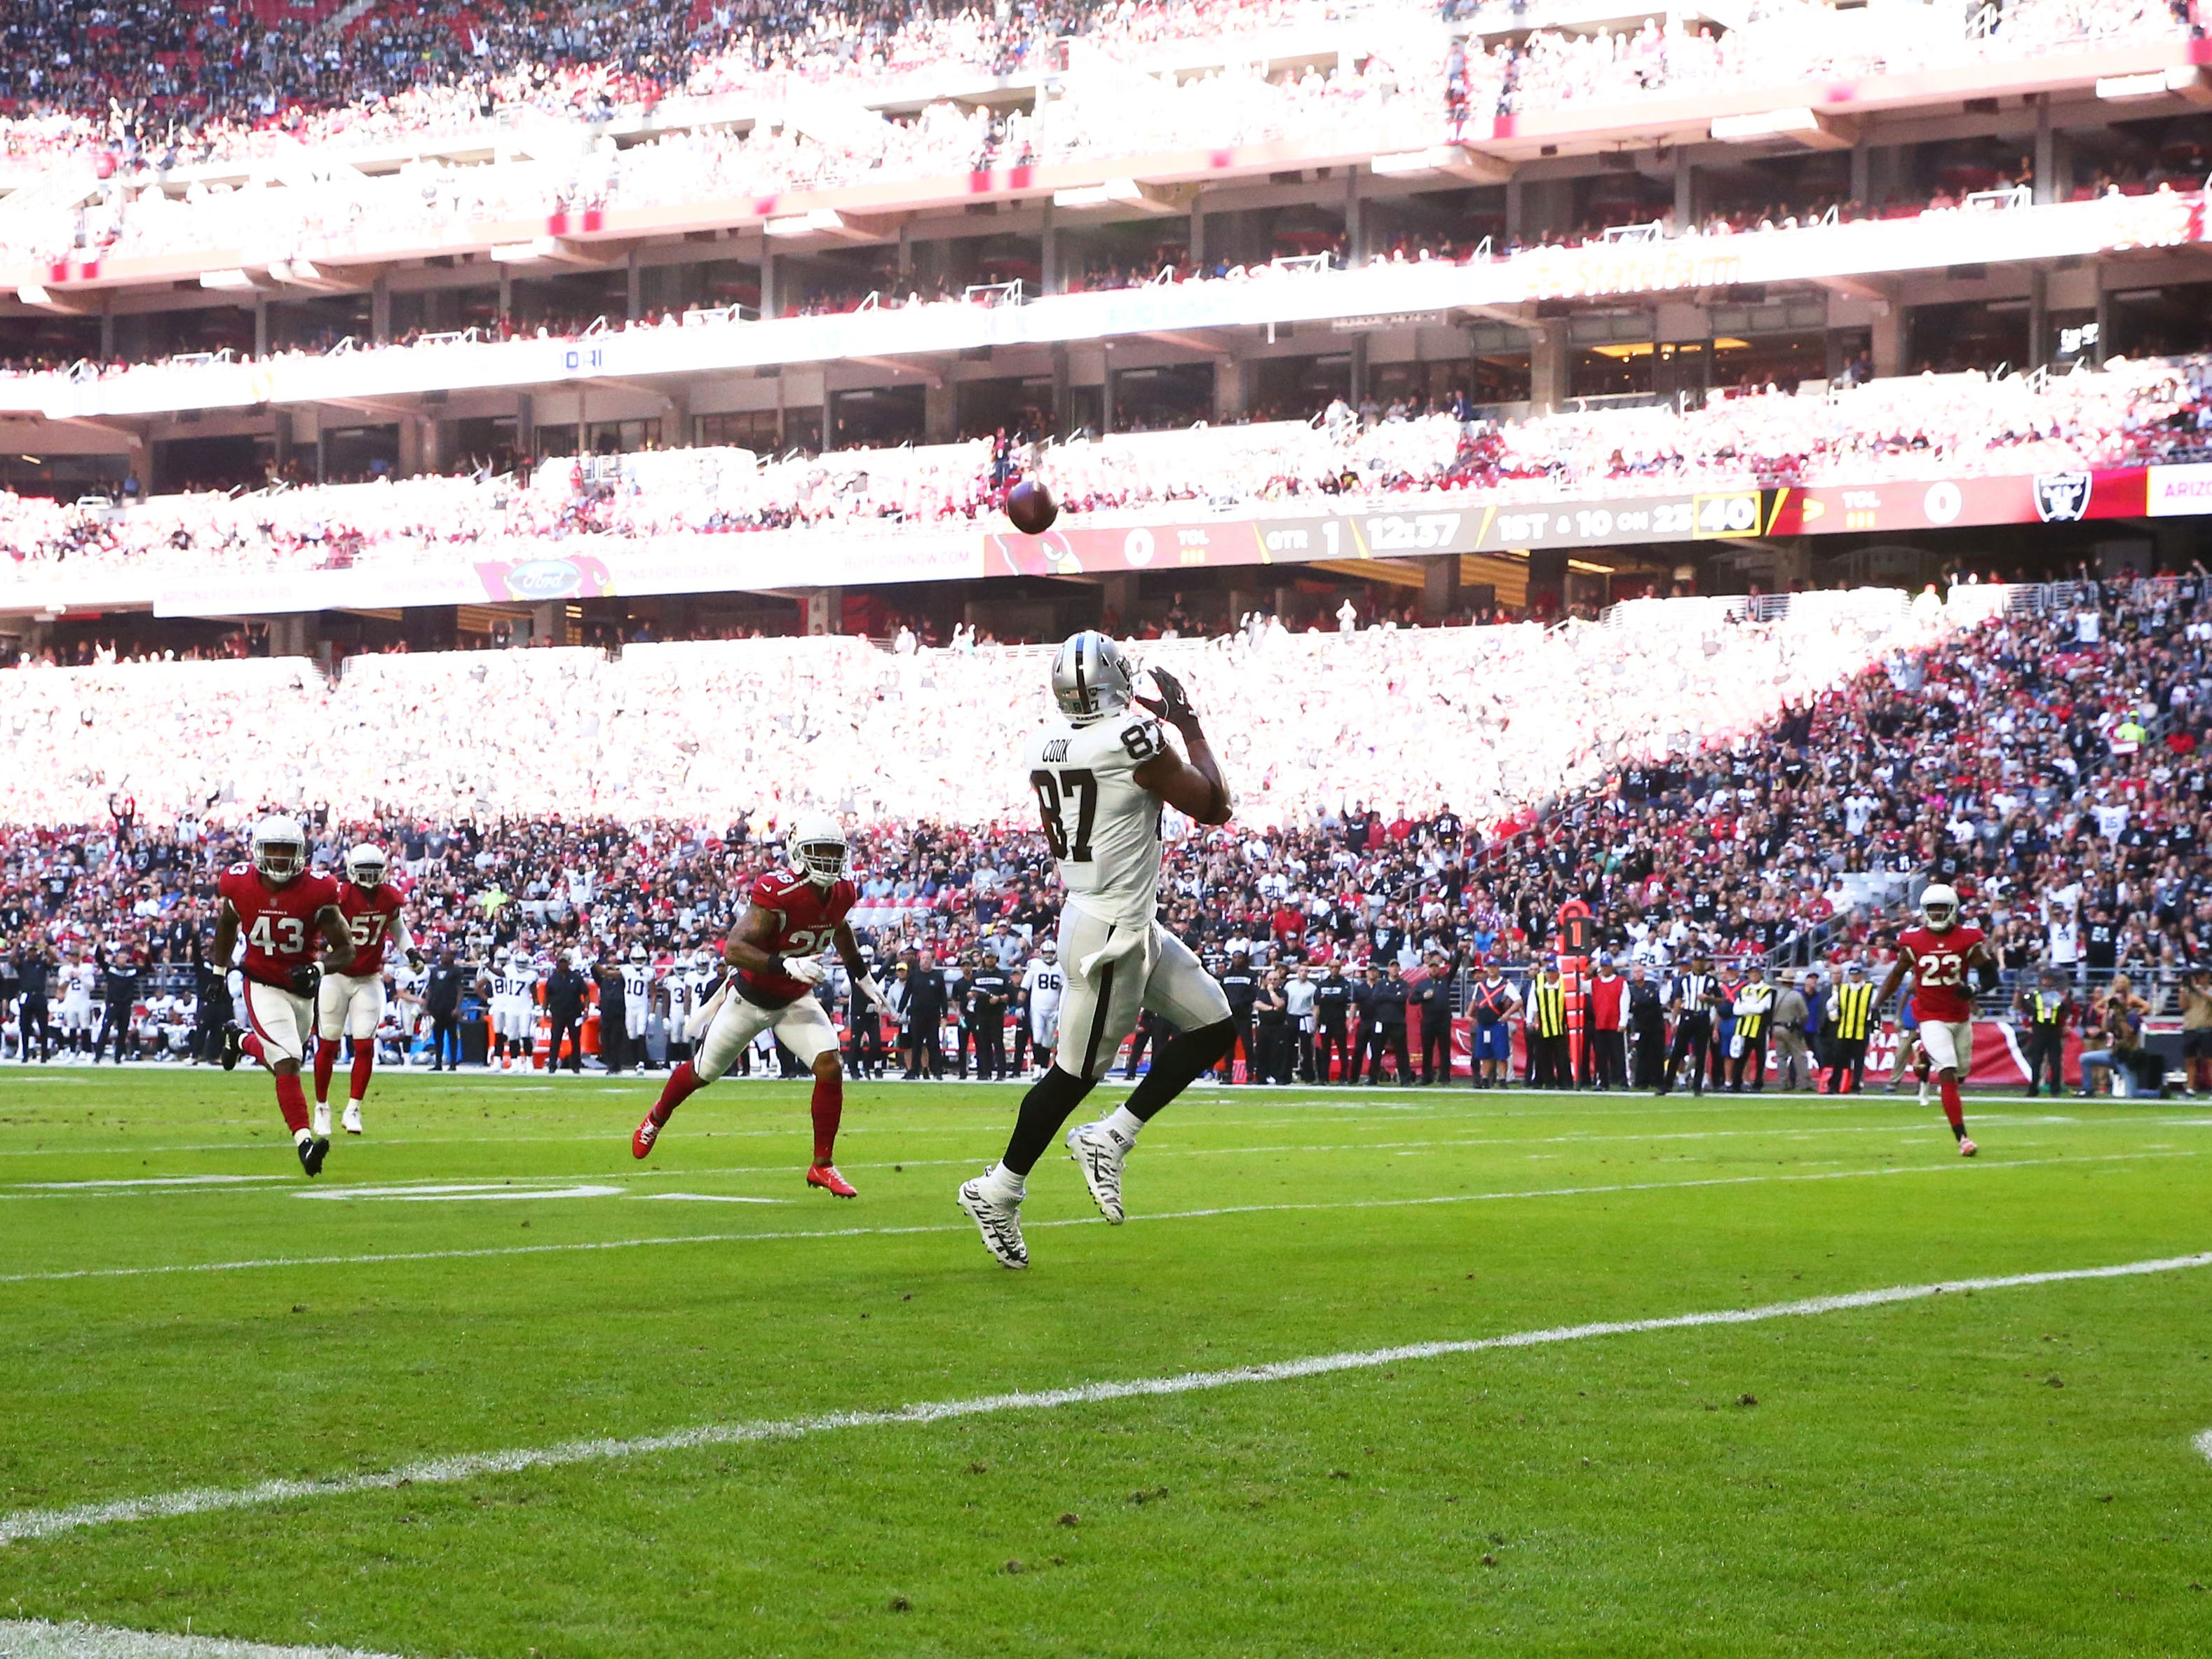 Oakland Raiders tight end Jared Cook makes a touchdown catch against the Arizona Cardinals in the first half during a game Nov. 18 at State Farm Stadium.